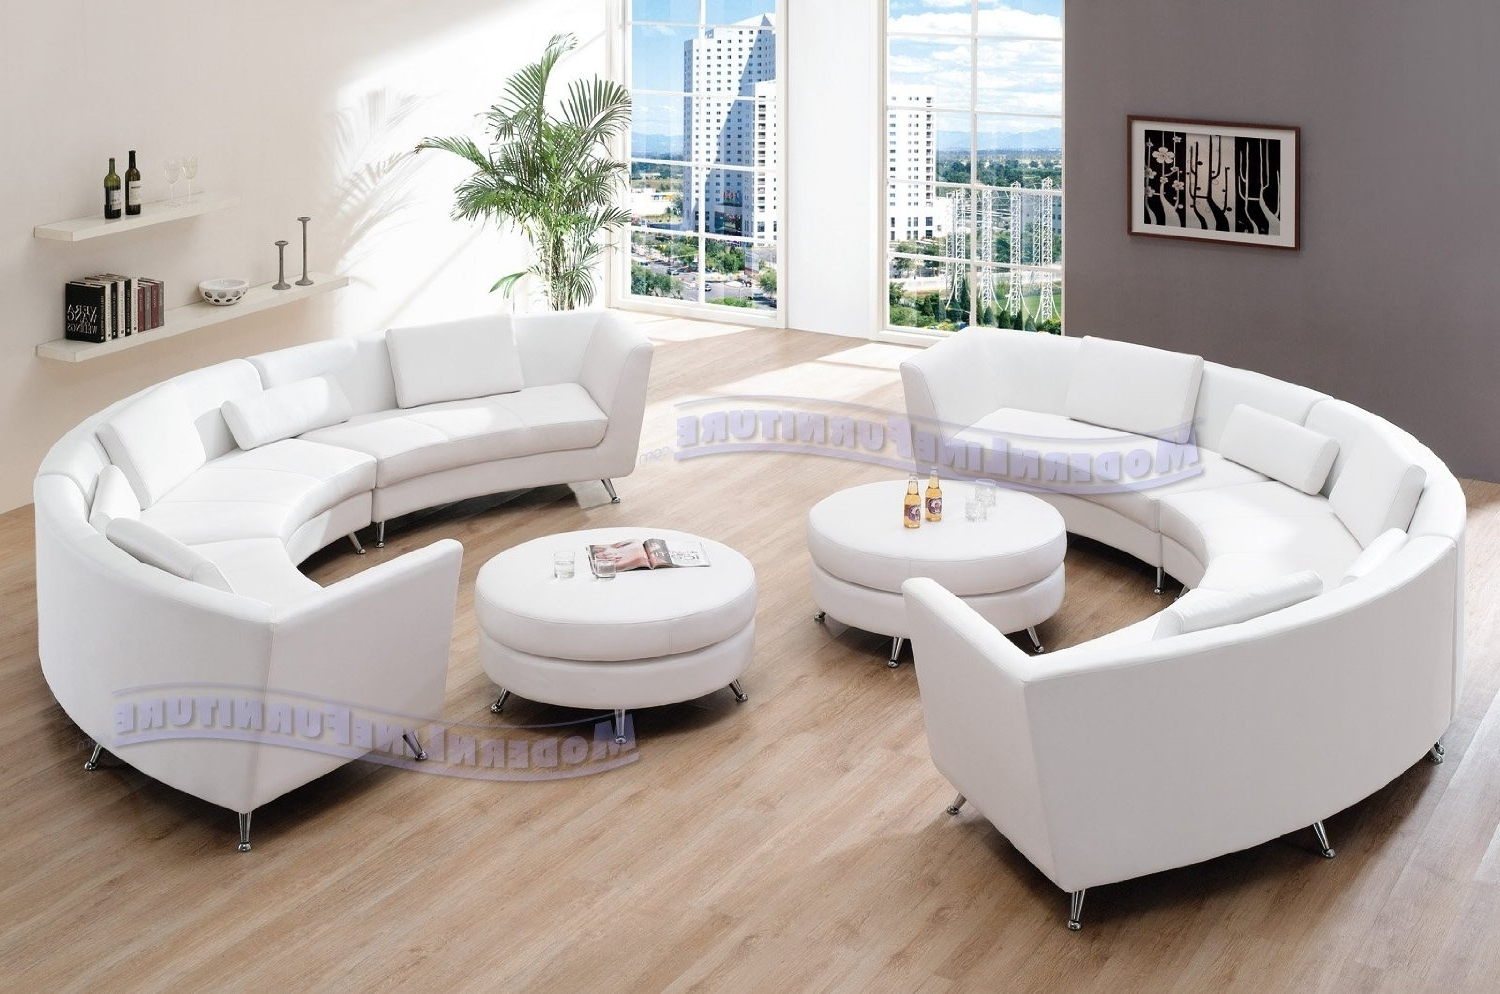 C Shaped Sofas Within 2018 C Shaped Sofas 17 With C Shaped Sofas – Fjellkjeden (View 2 of 20)